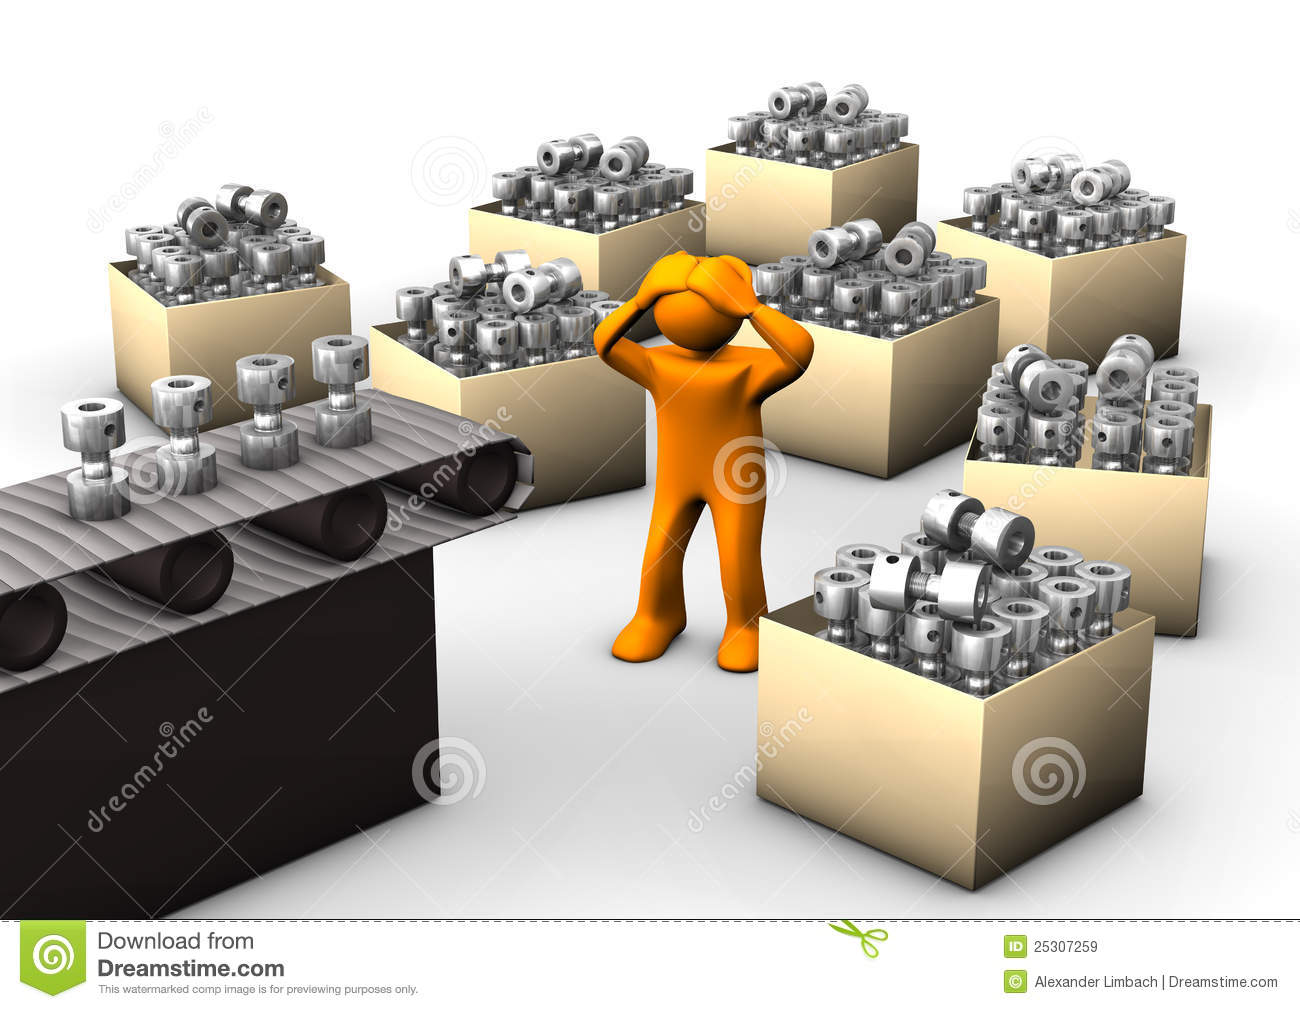 Example image warehouse plan - Overproduction Royalty Free Stock Images Image 25307259